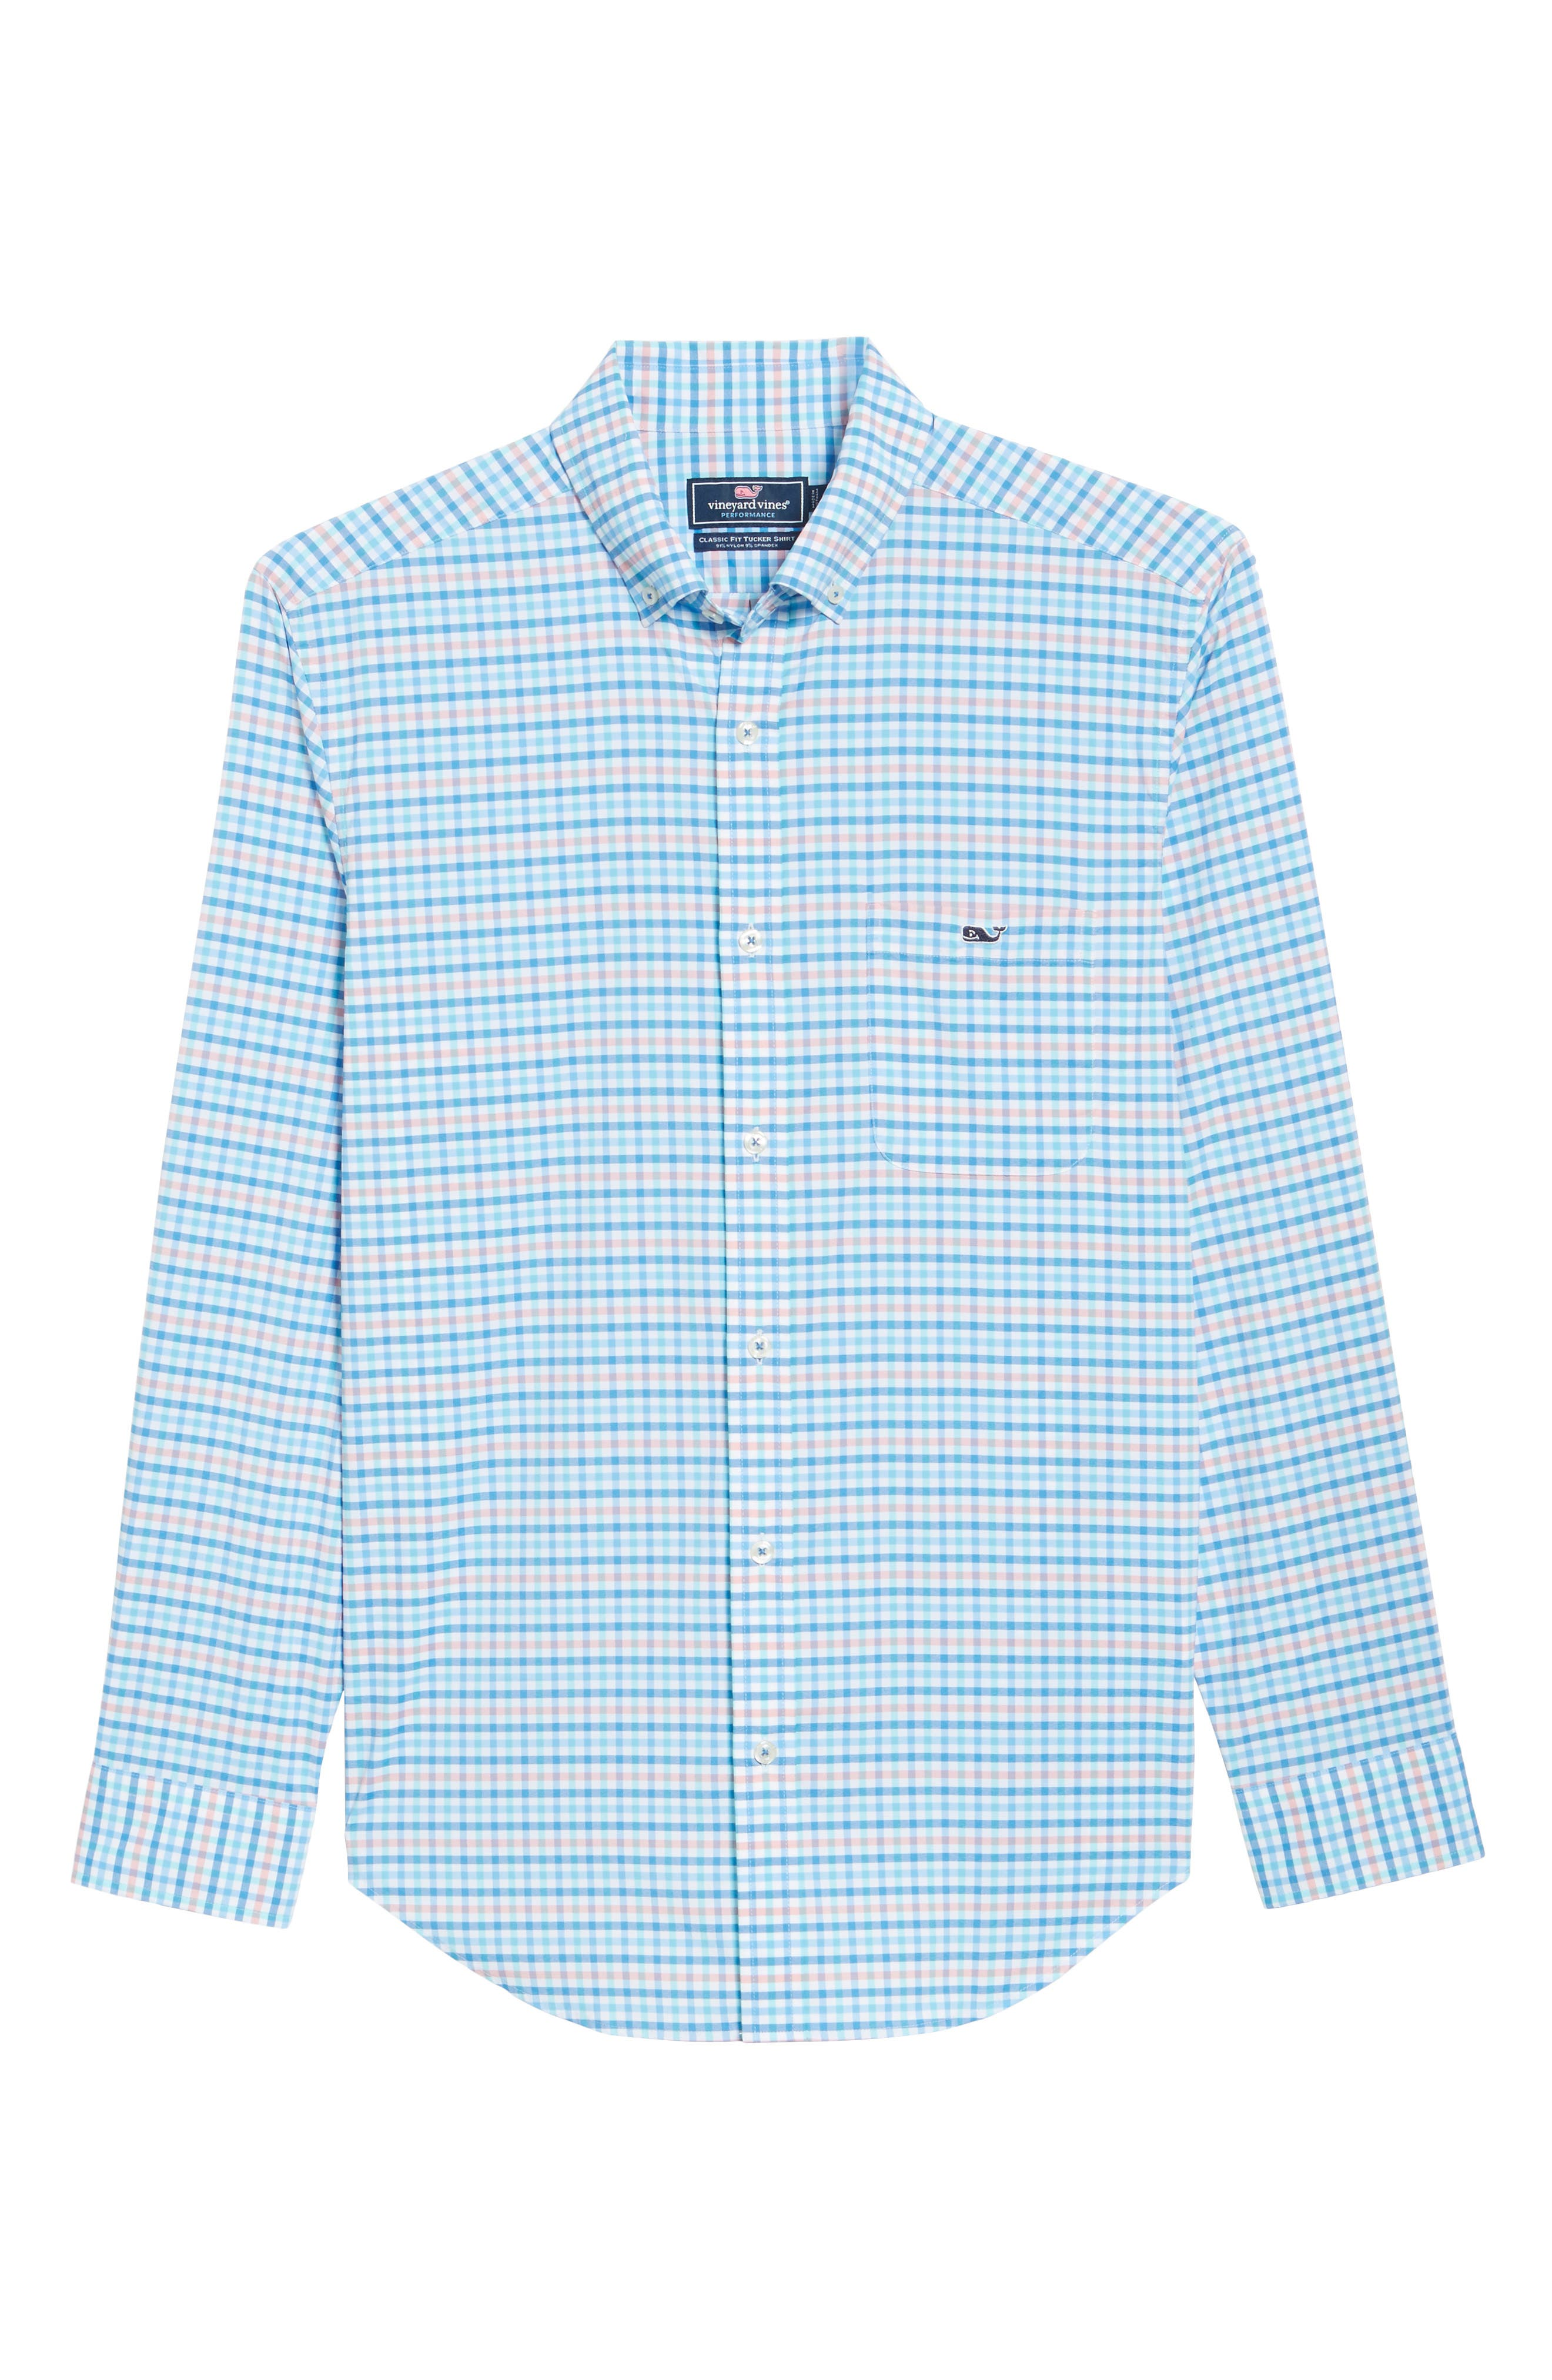 Coco Bay Classic Fit Check Performance Sport Shirt,                             Alternate thumbnail 6, color,                             Ocean Breeze